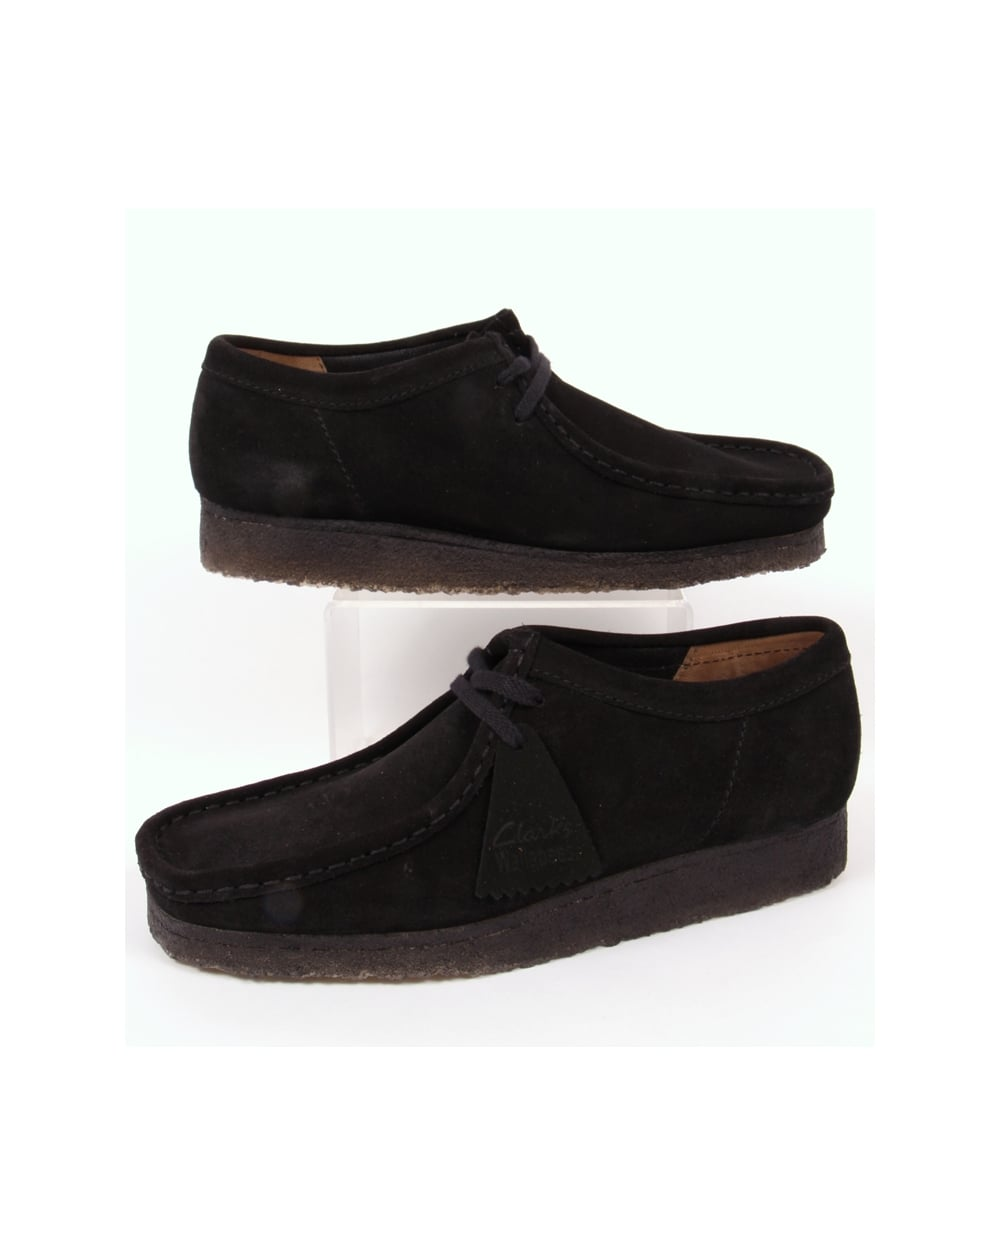 Clarks Originals Wallabee Shoe In Suede Black Clarks 28